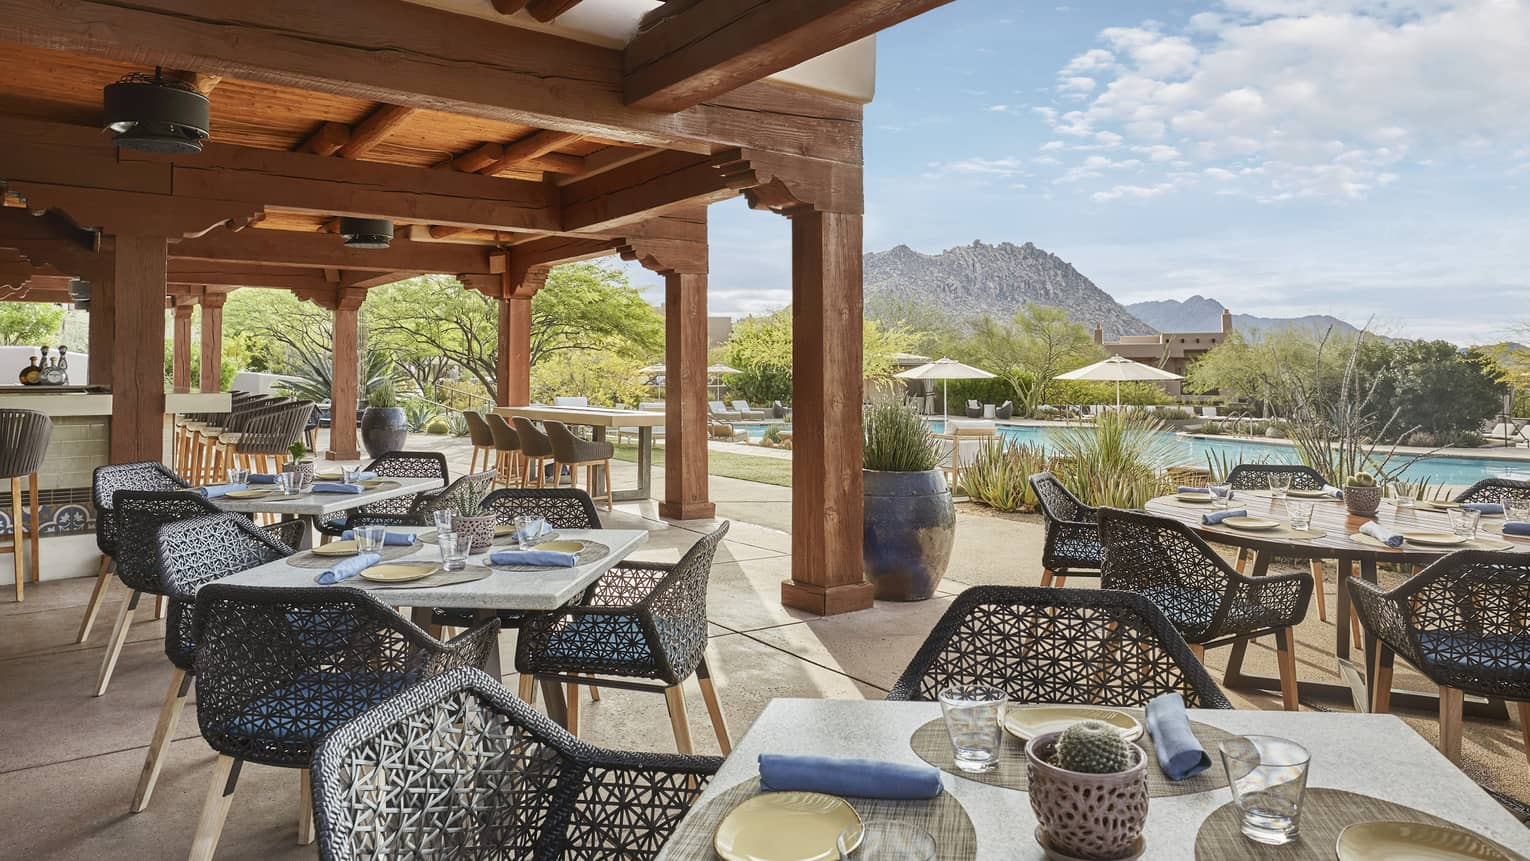 Outdoor restaurant patio with square tables, each with four dark blue wicker chairs, wooden pergola